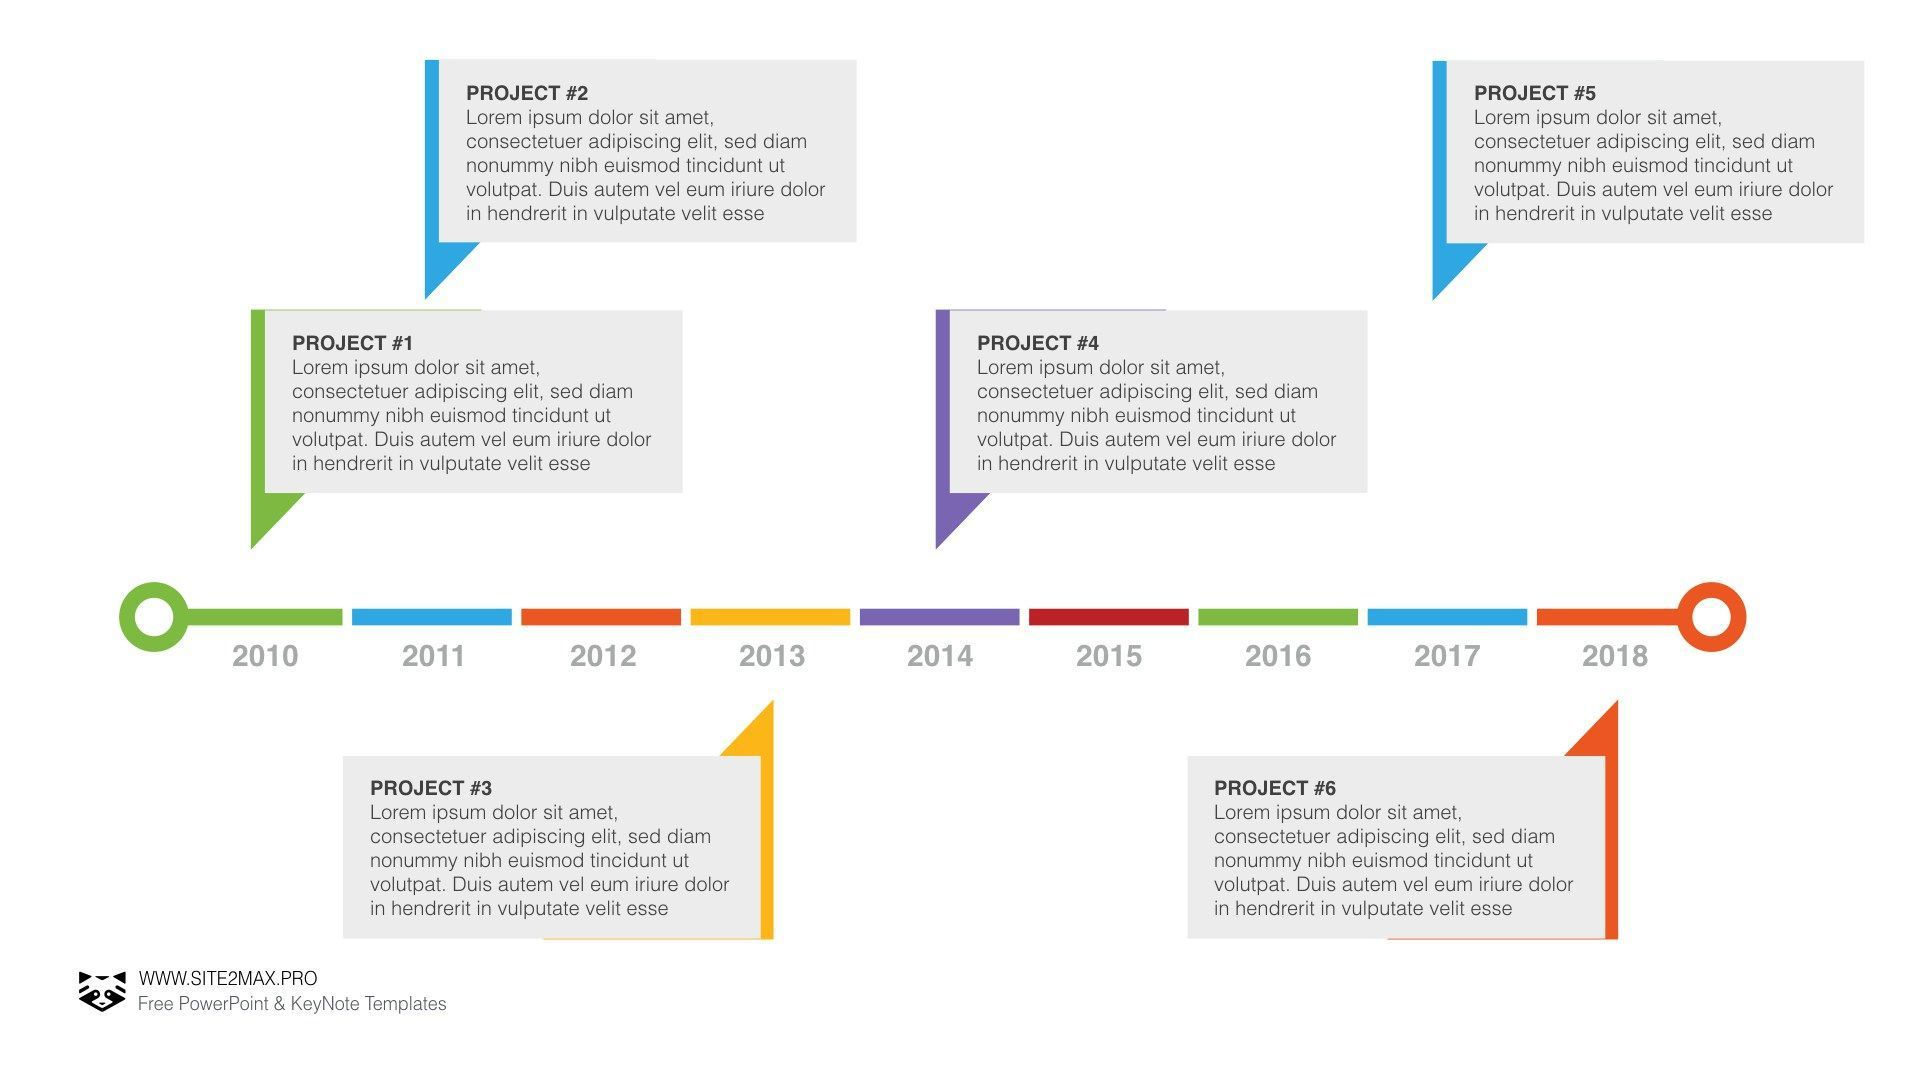 004 Shocking Timeline Powerpoint Template Download Free Inspiration  Project Animated